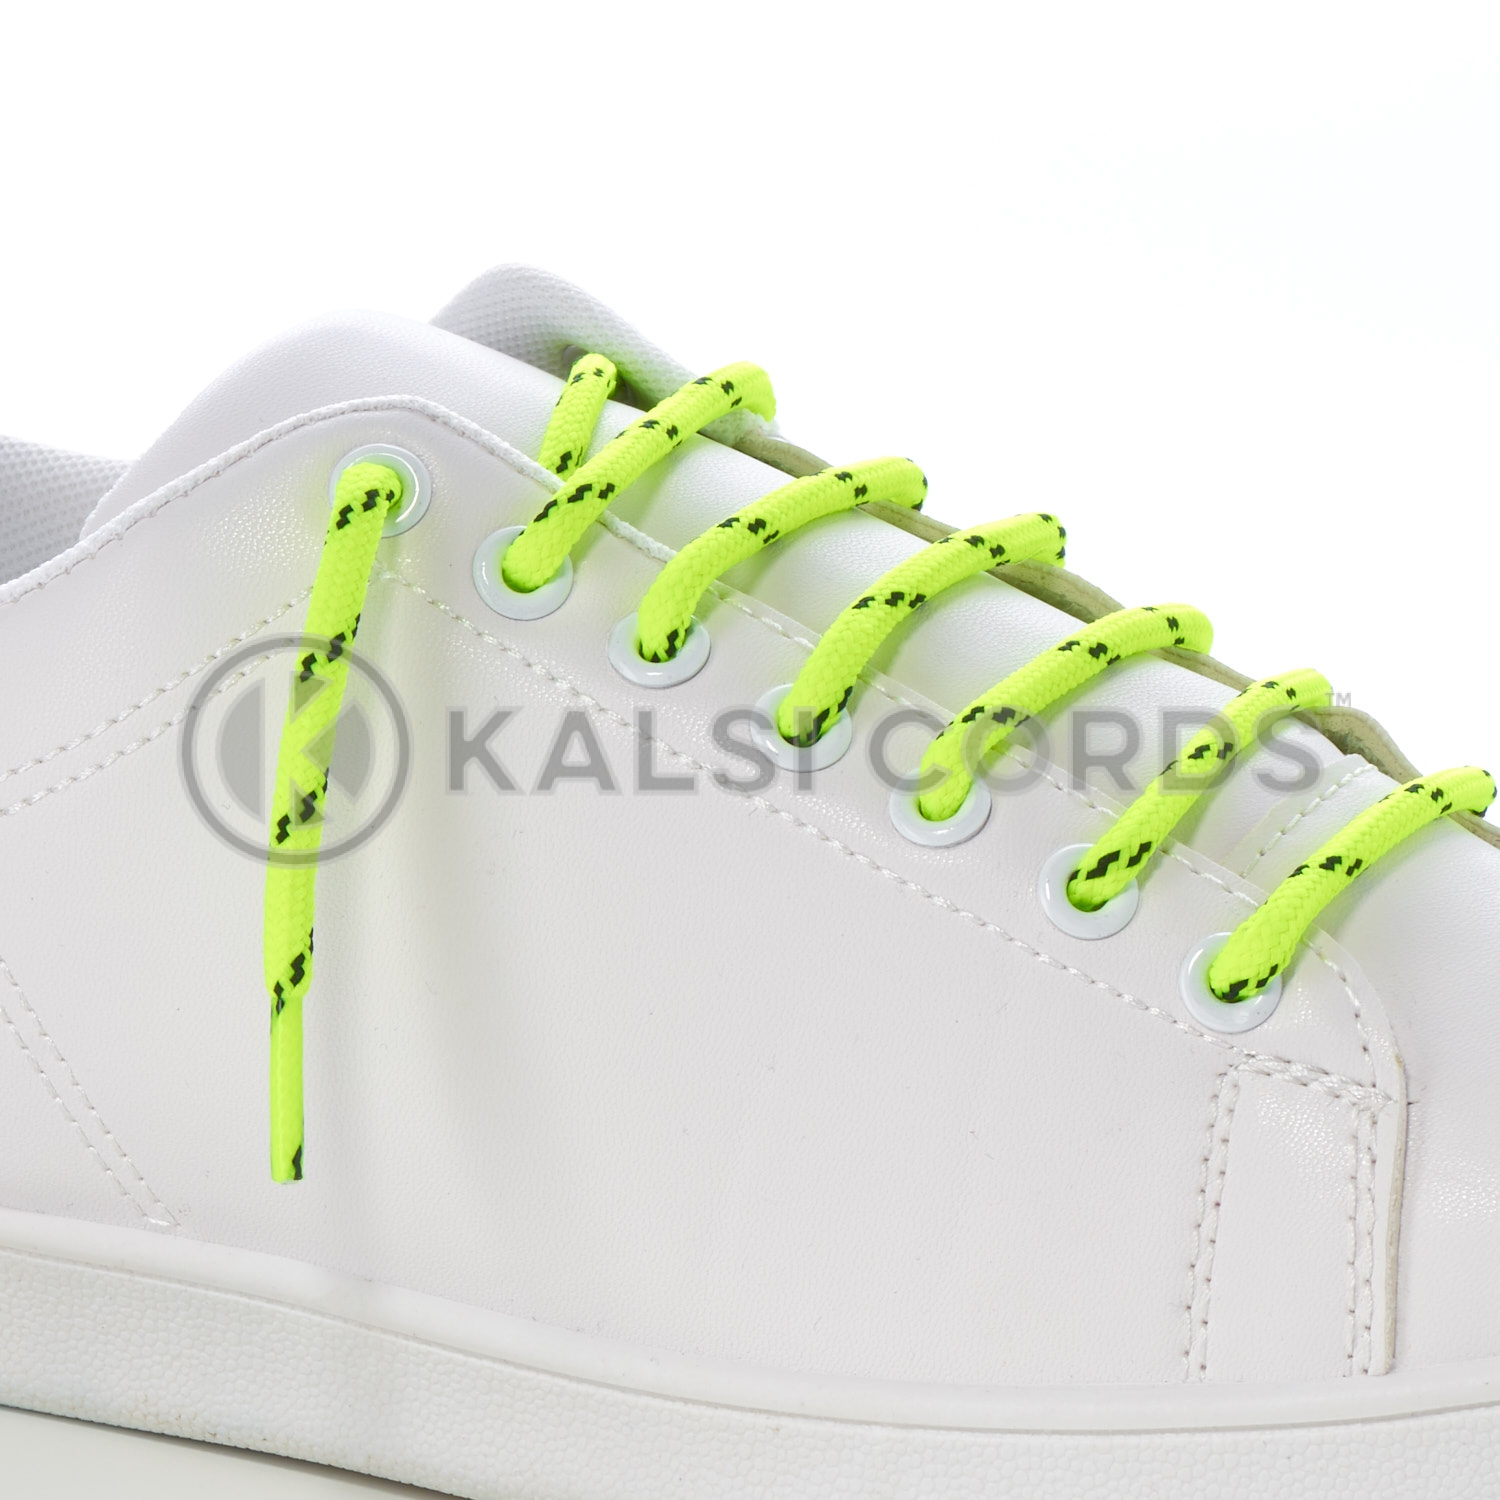 T621 5mm Round Cord Fluorescent Shoe Lace Yellow Black Kids Trainers Adults Hiking Walking Boots Kalsi Cords